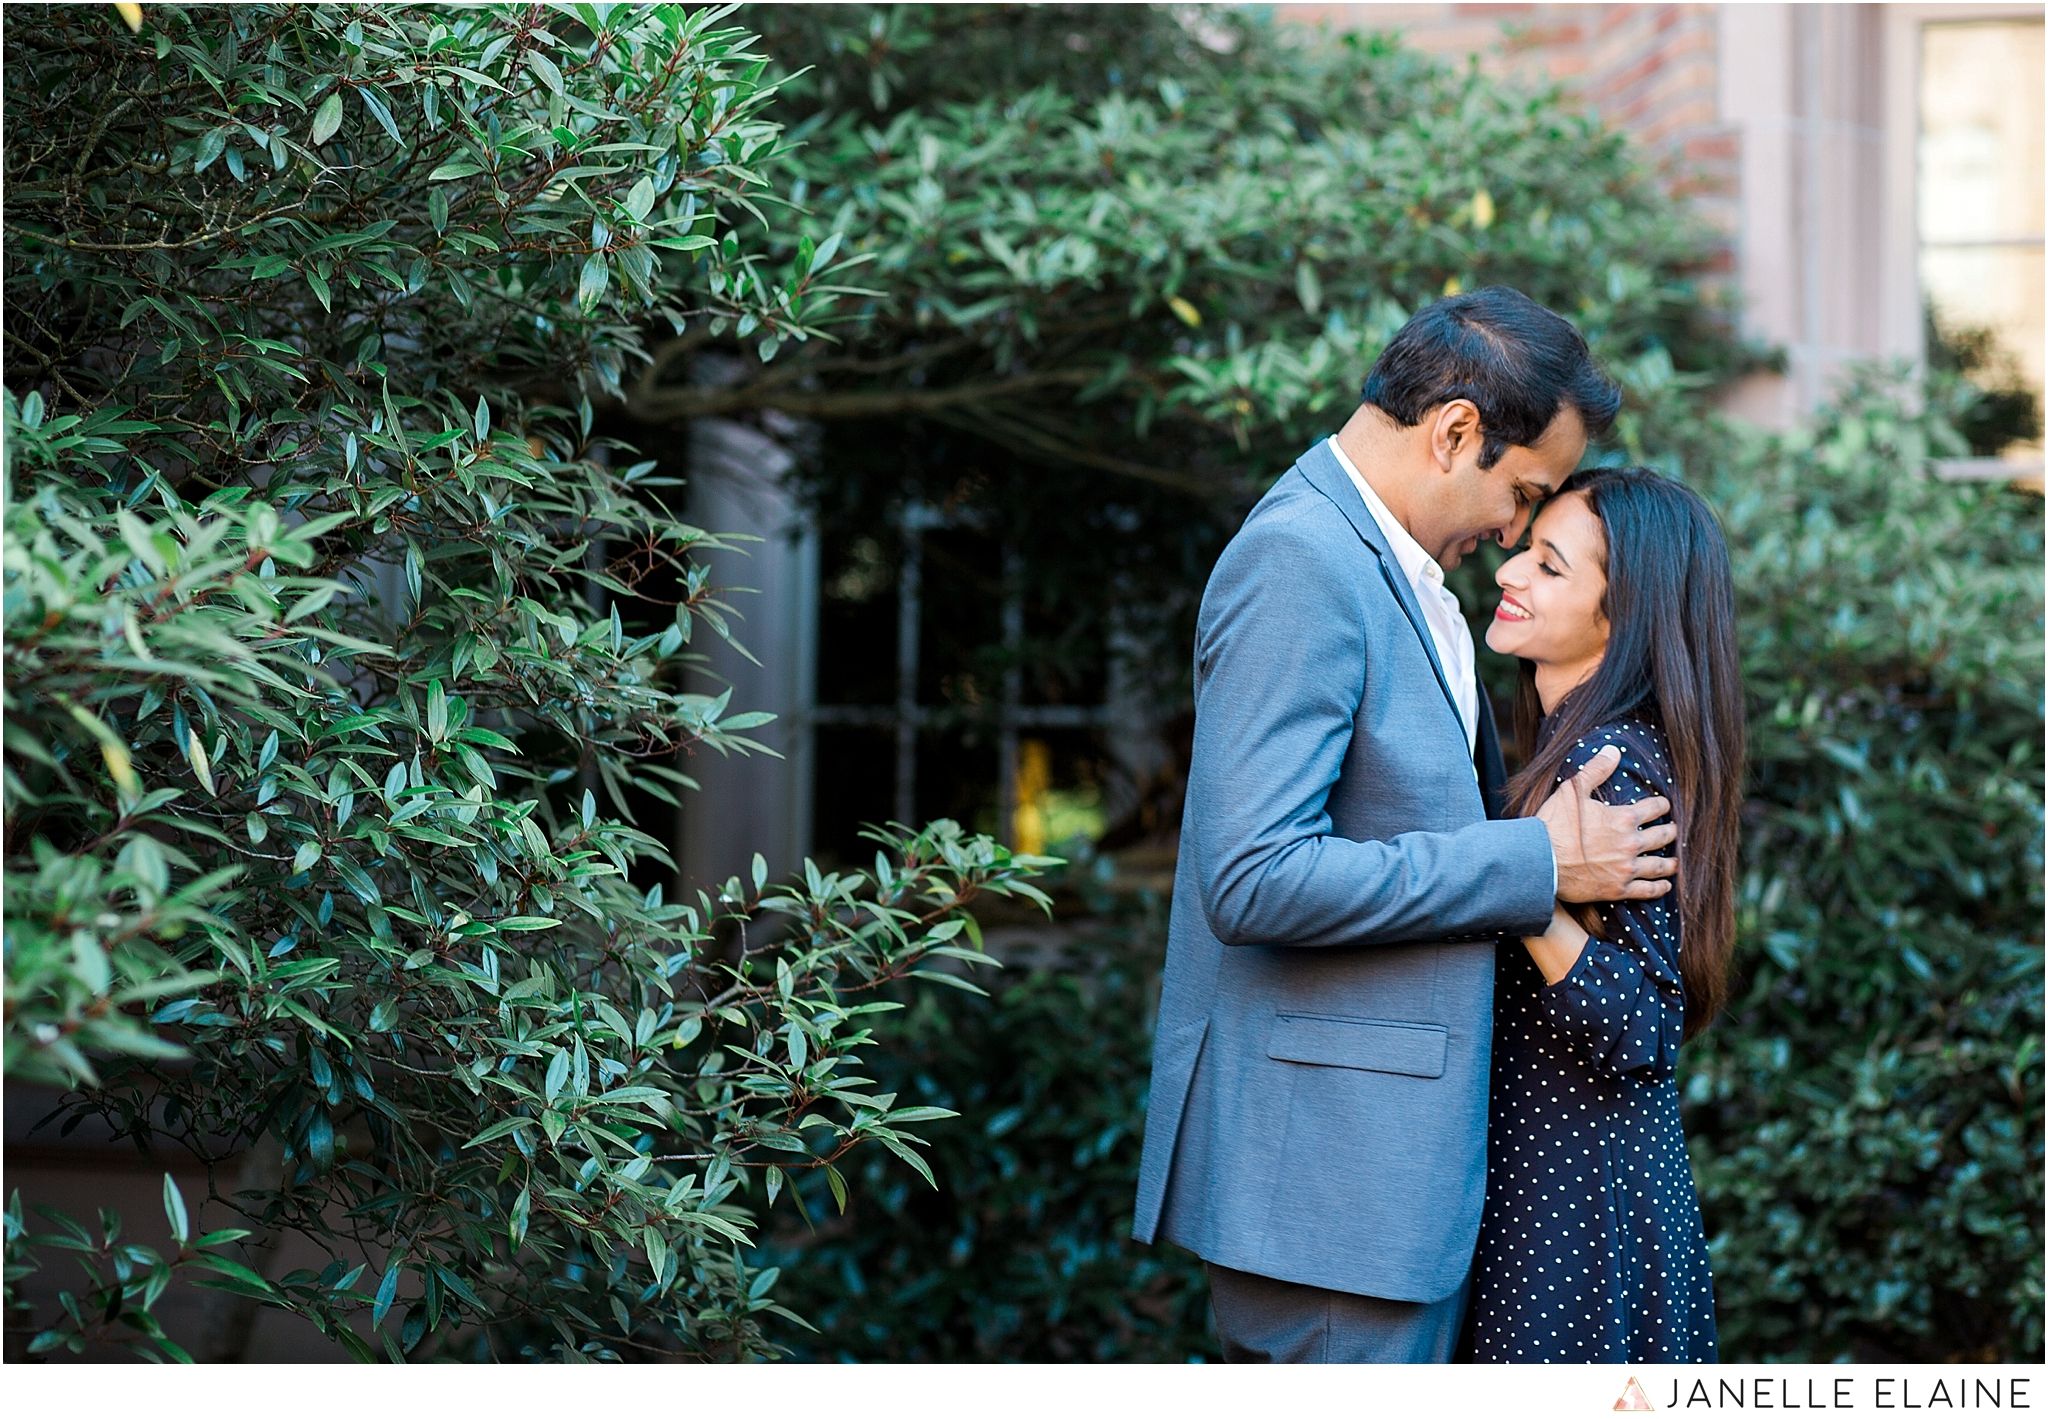 janelle elaine photography-zain and umema-seattle-uw-red square-engagement-photographer-127.jpg